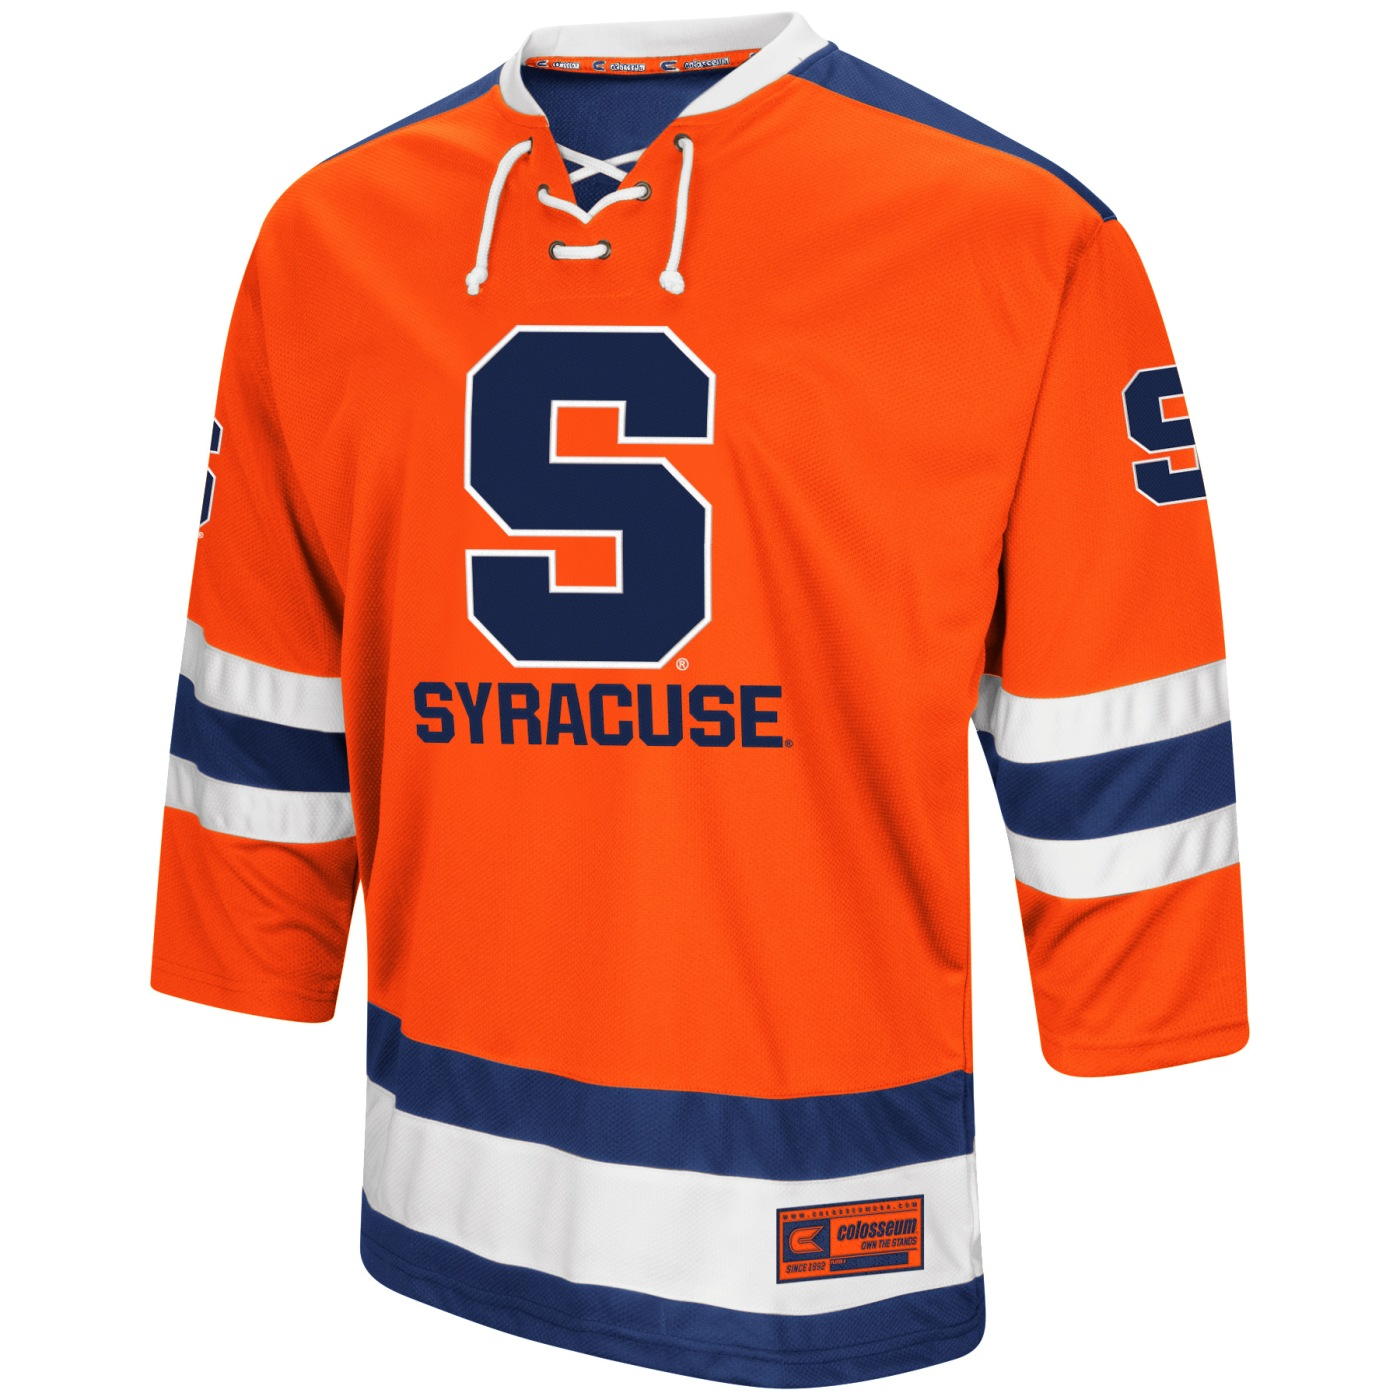 "Syracuse Orange NCAA ""Ice Machine"" Men's Hockey Sweater Jersey"